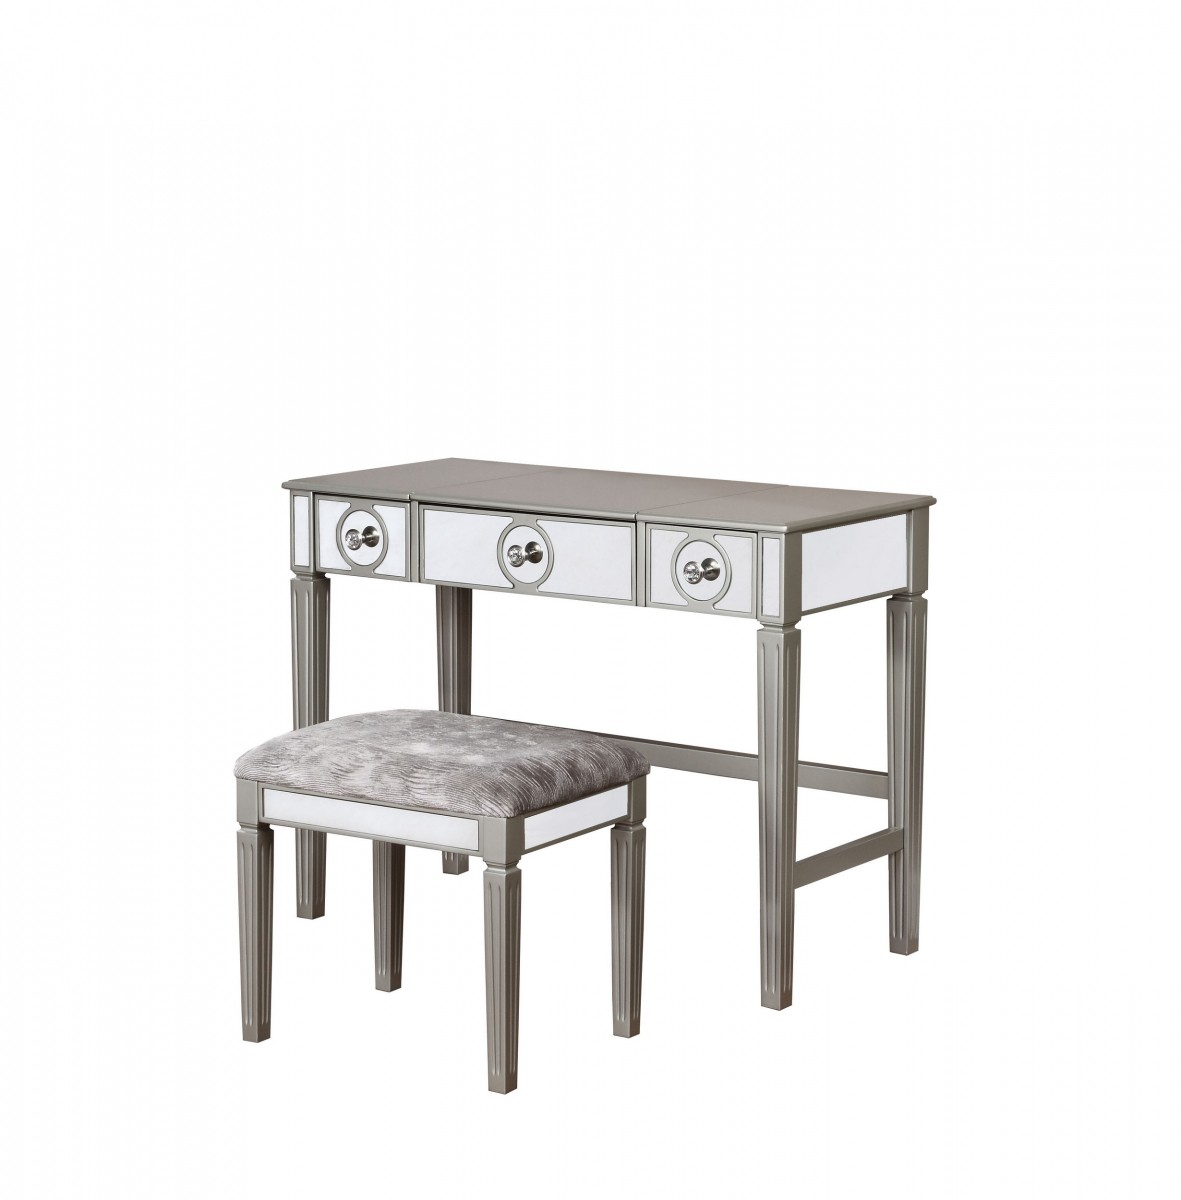 Linon Home Decor Products Inc. Madison Silver Vanity 2